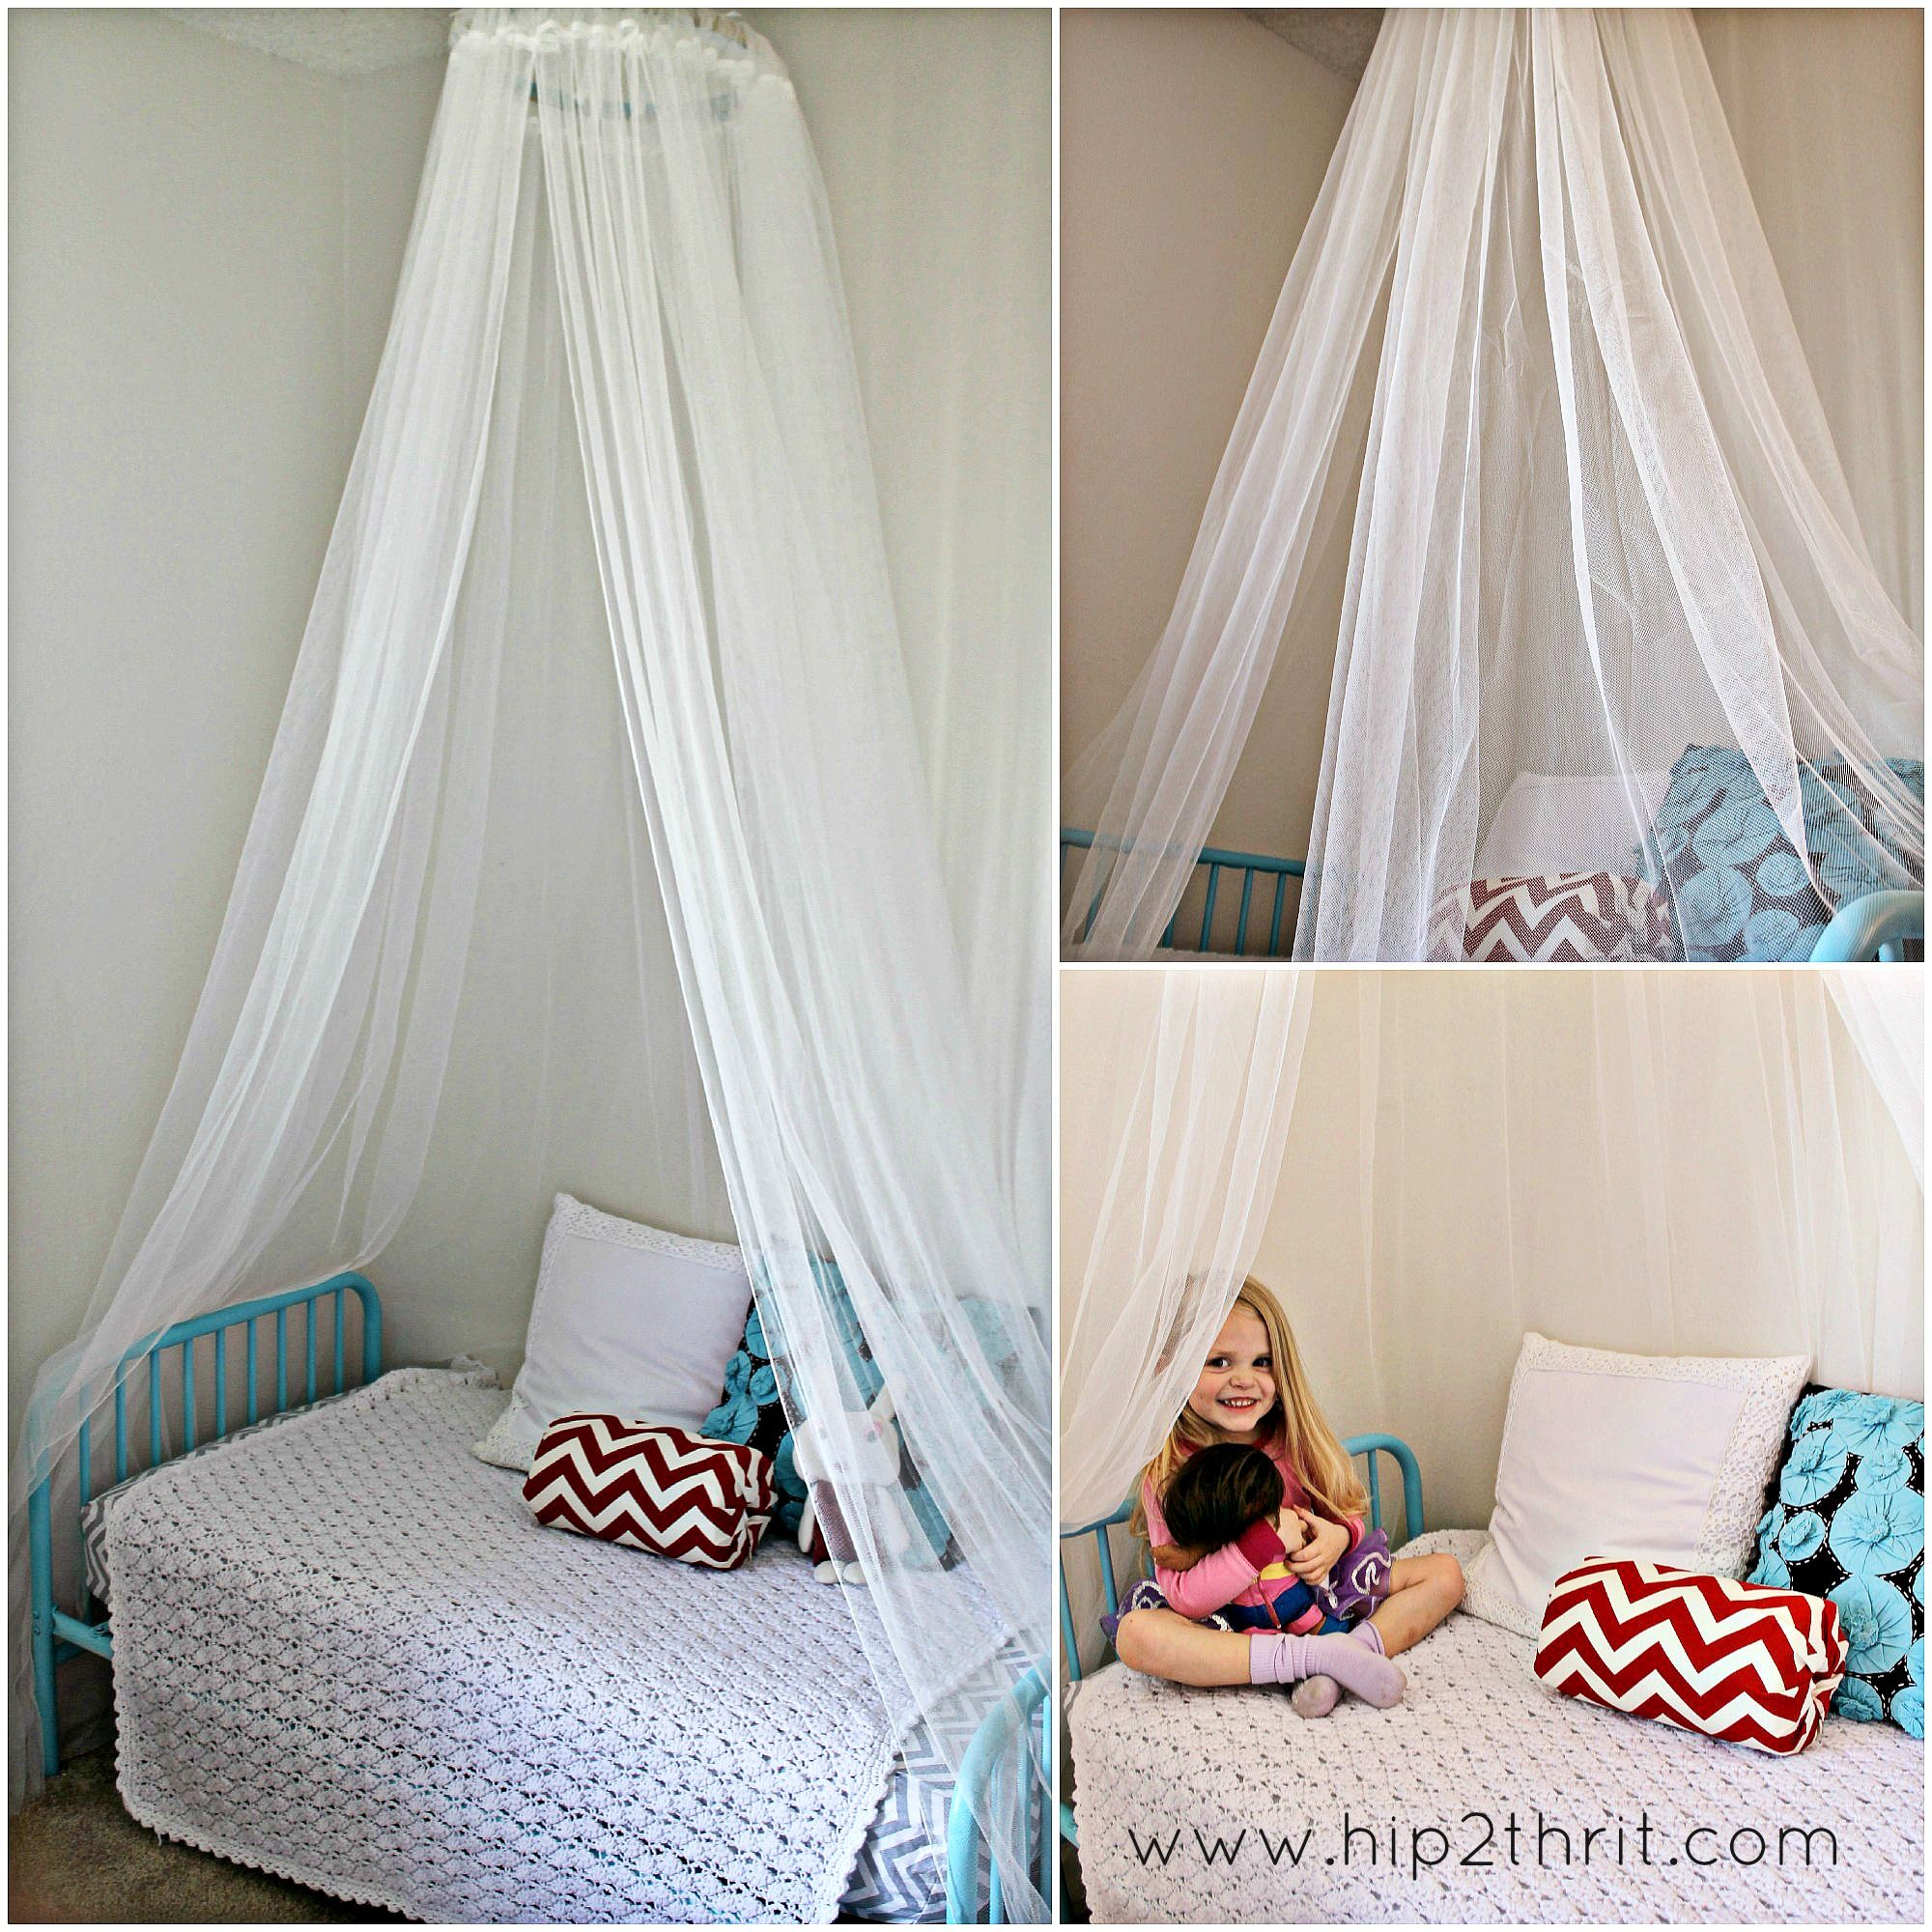 Canopy bed curtains ikea - Diy Canopy Bed Using A Embroidery Hoop Perfect To Keep You Safe At Night From